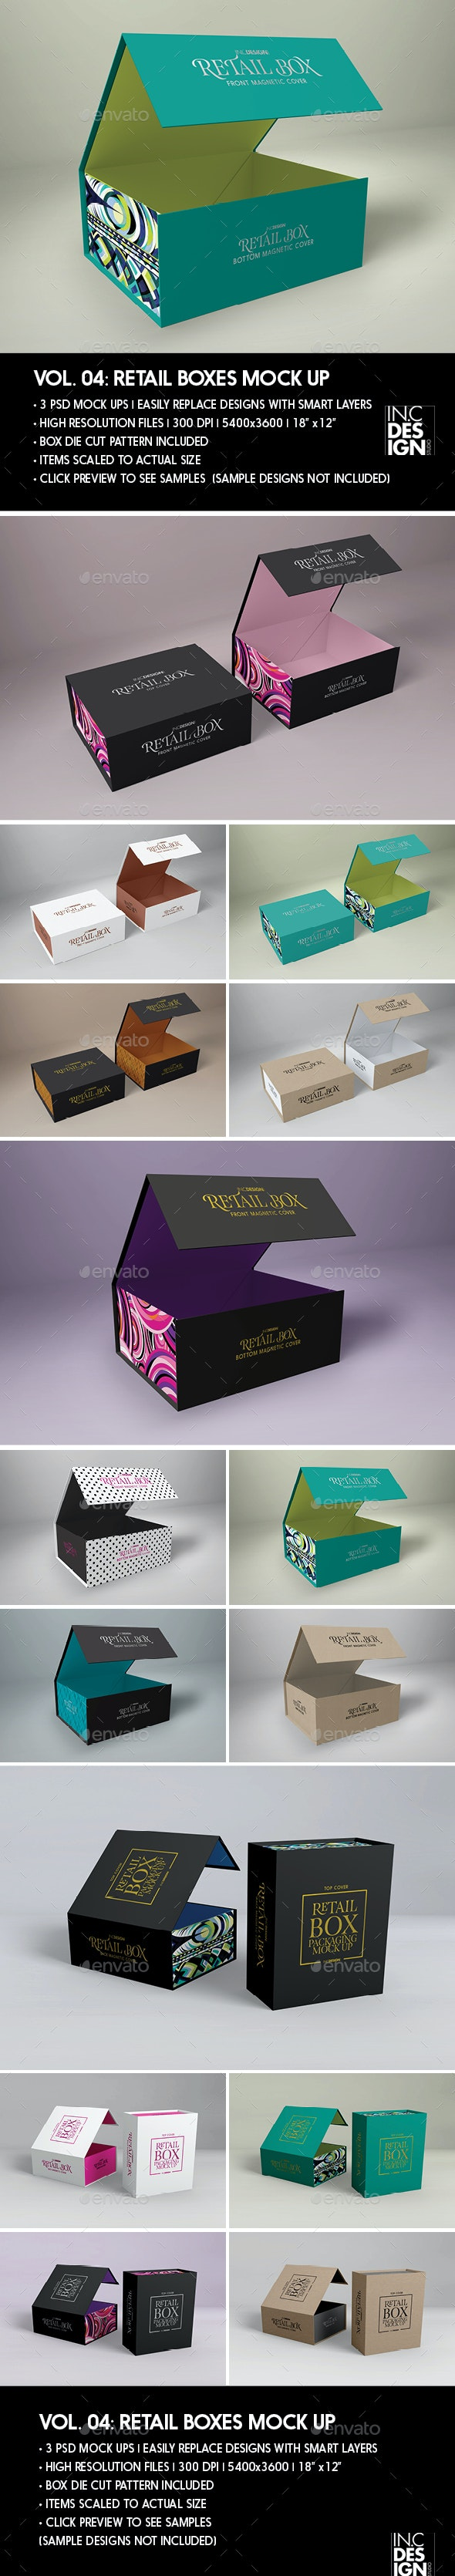 Retail Boxes Vol 4 Magnetic Box Packaging Mock Ups By Ina717